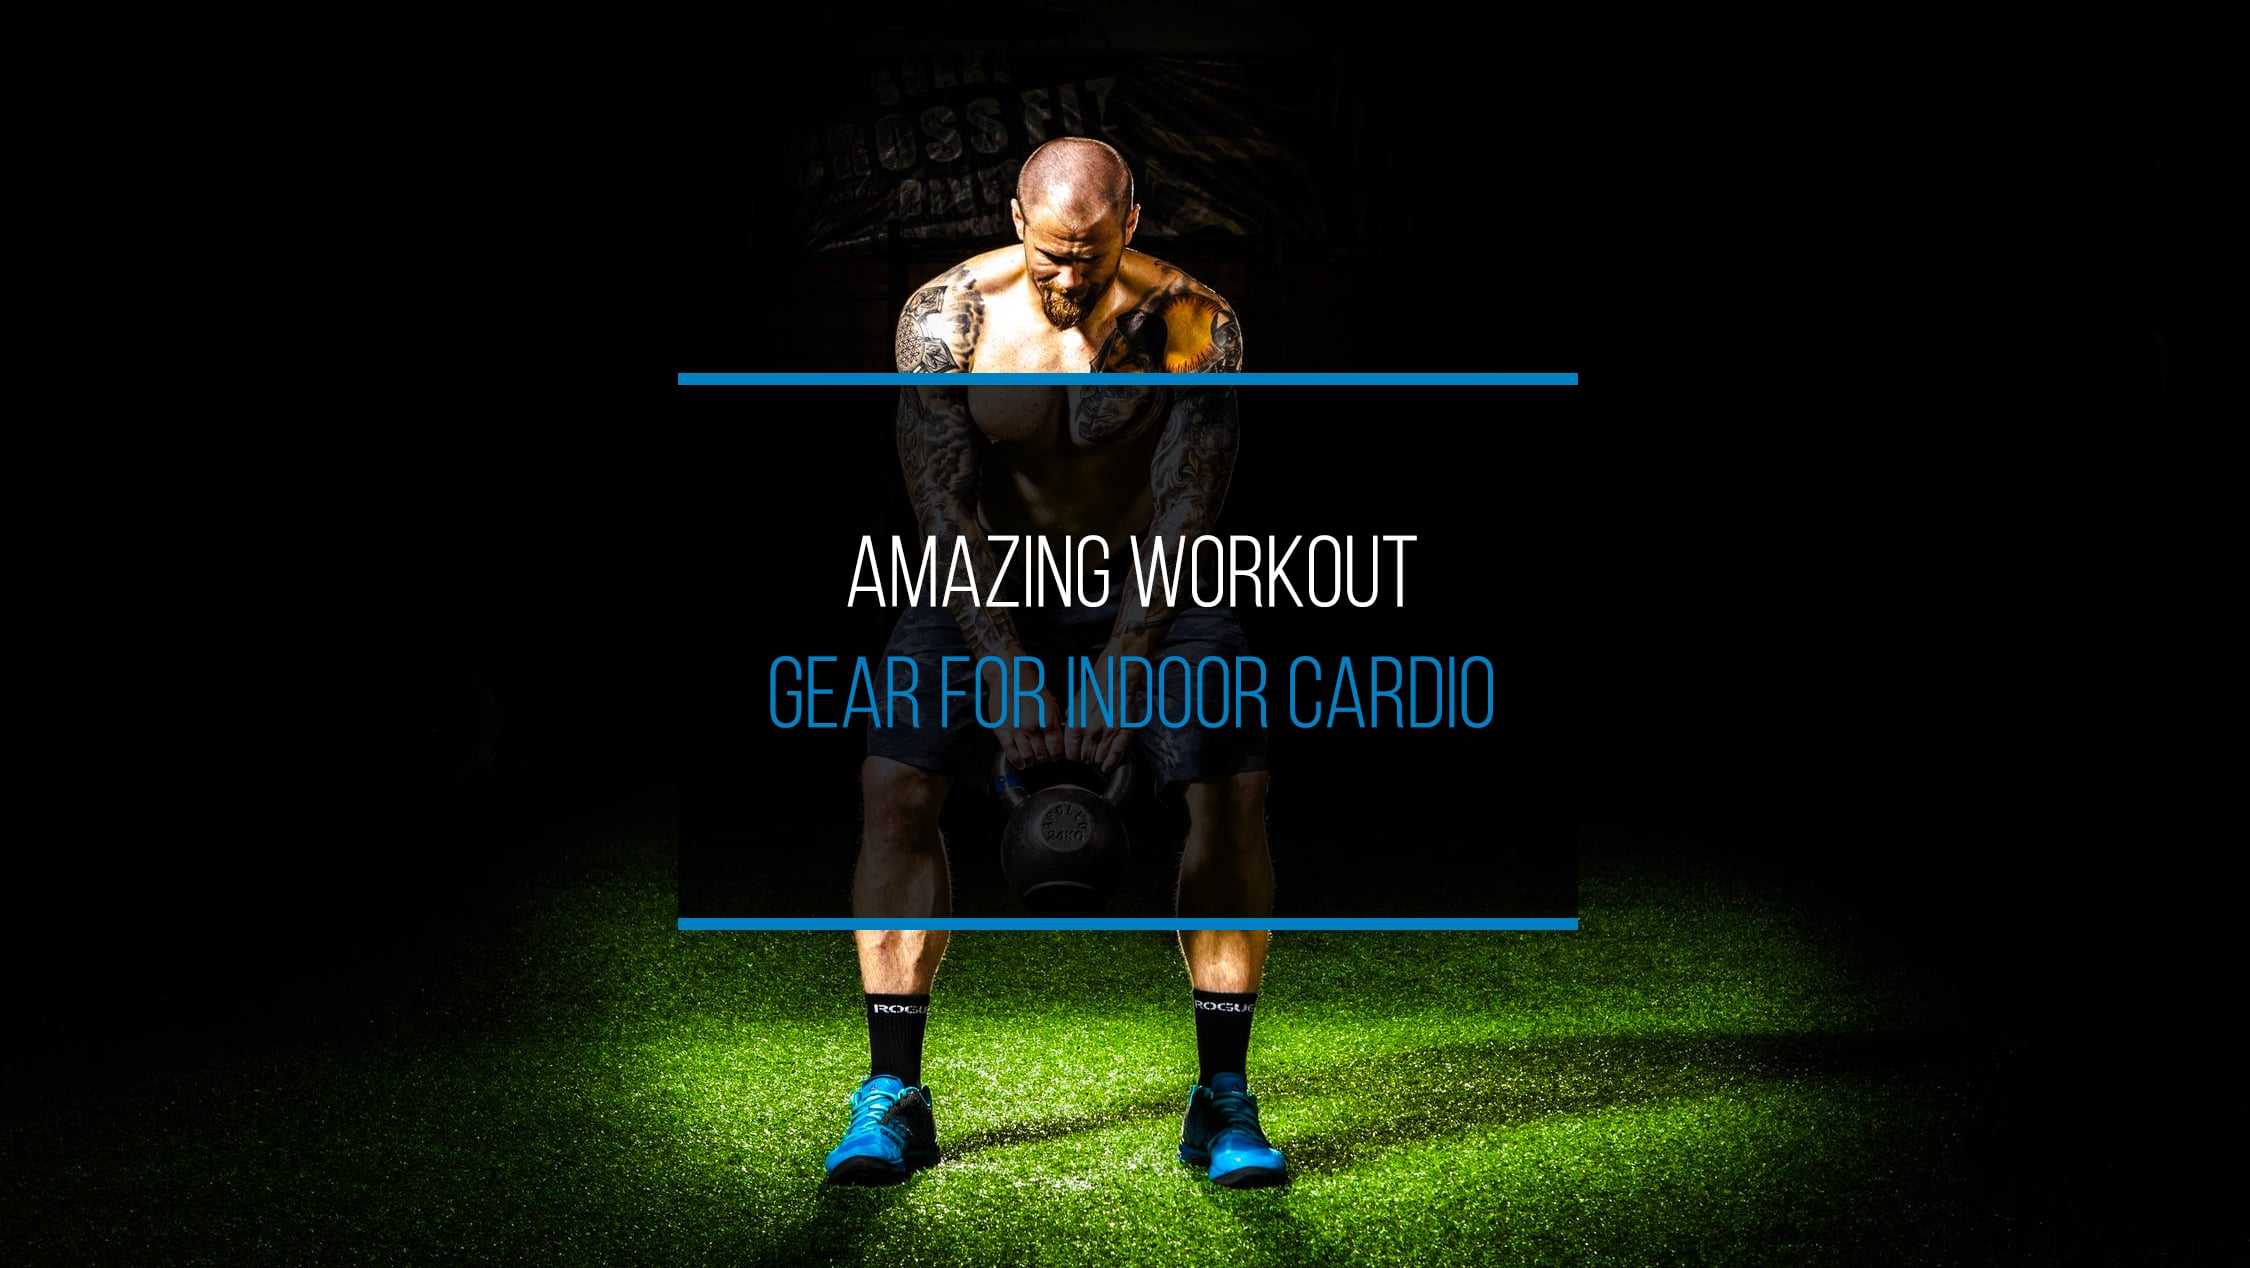 Amazing Workout Gear For Indoor Cardio